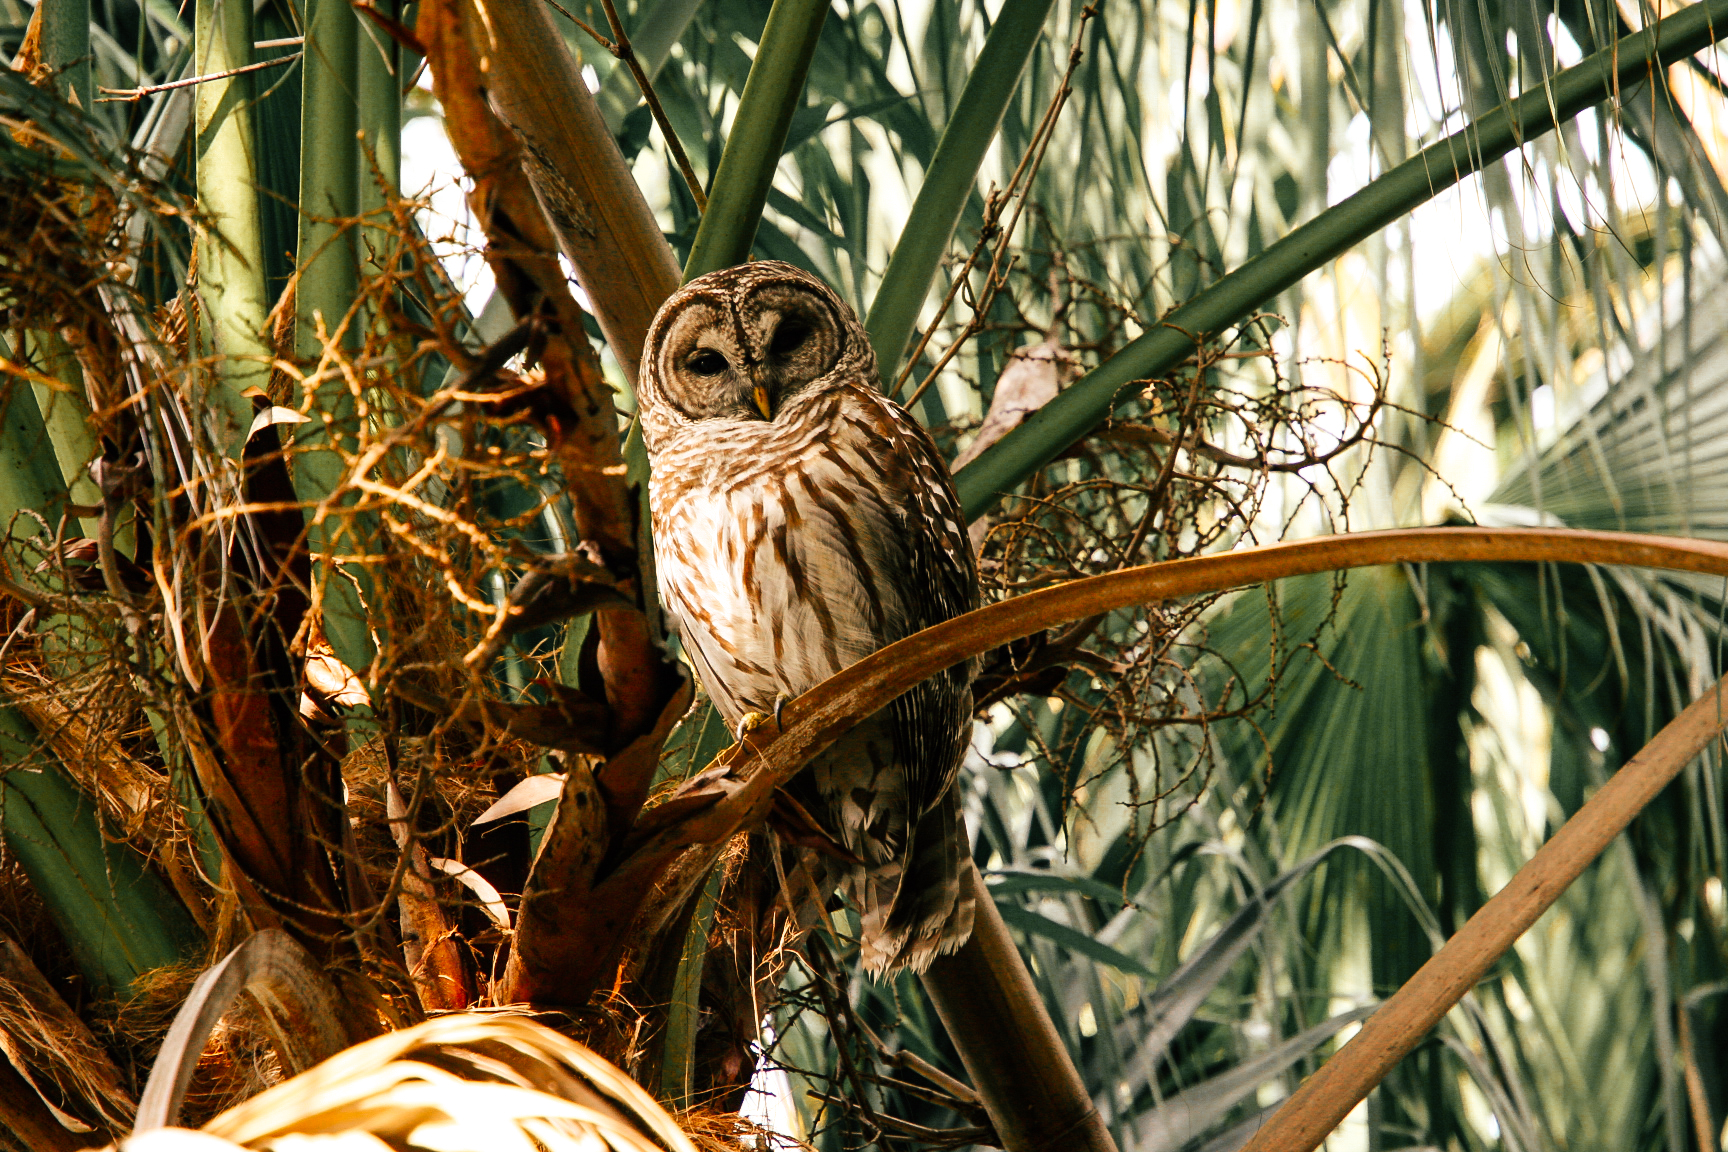 Barred-owl-Strix-varia-sat-in-tree-at-Florida-park-90995663_1728x1152.jpg